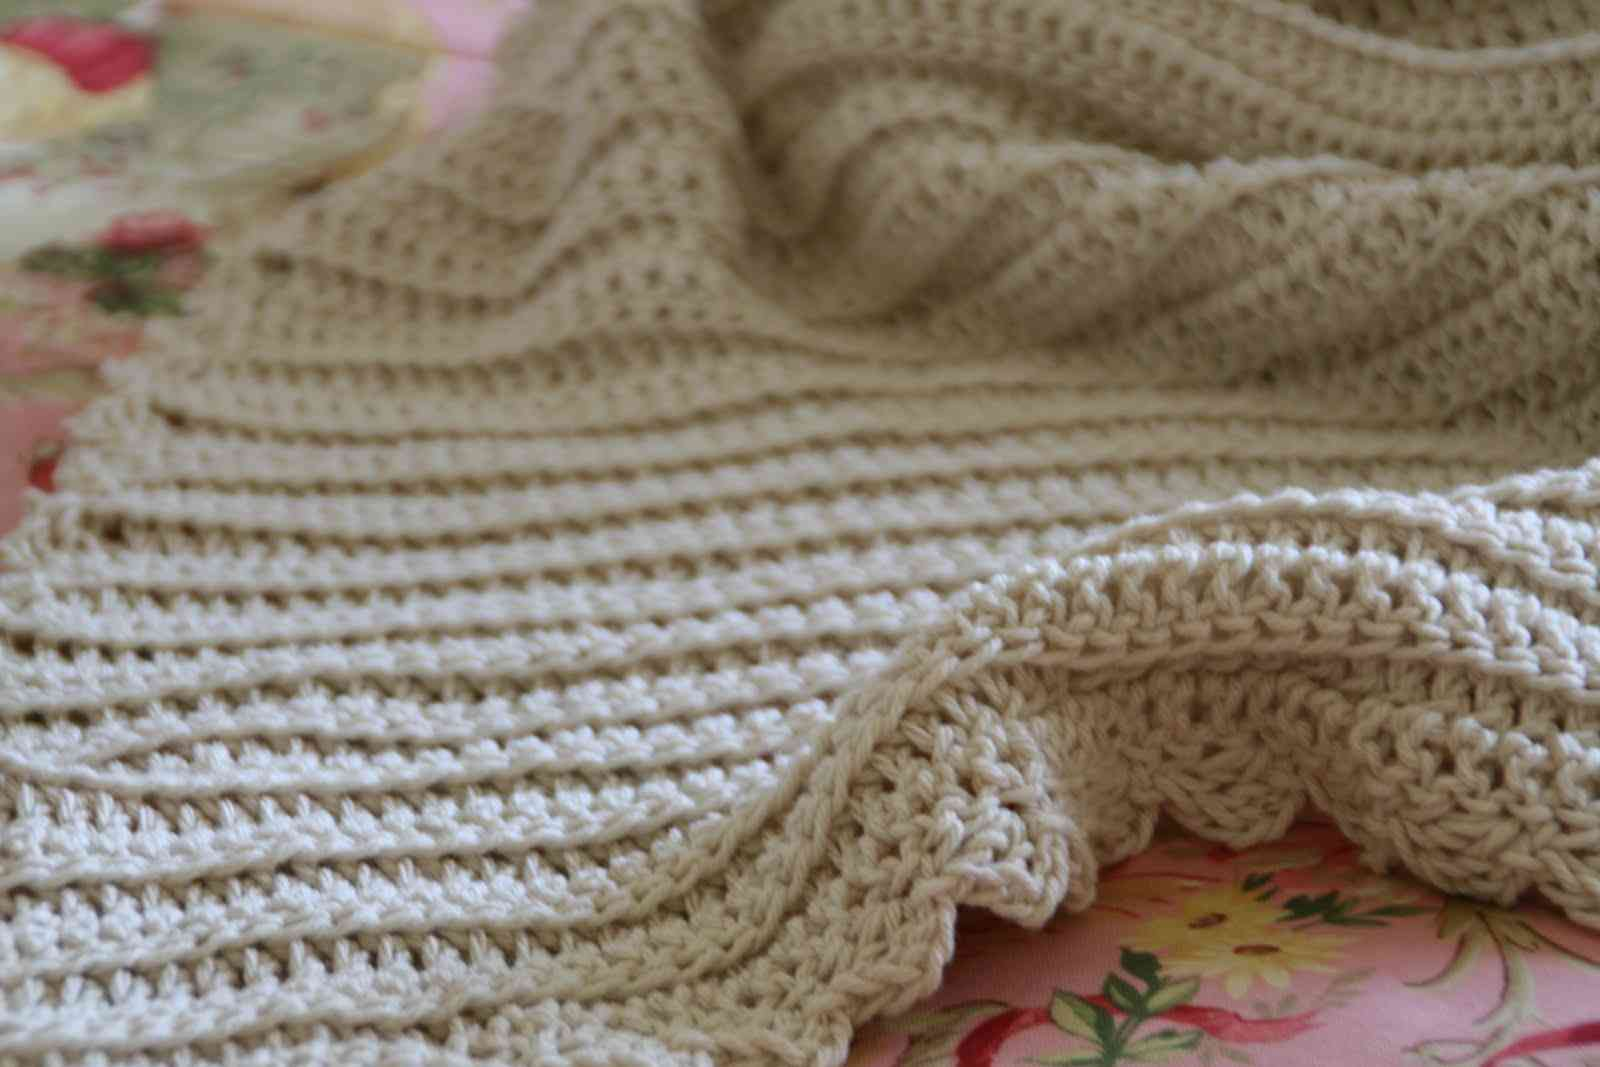 Crochet Patterns Easy Blankets : ... - Free Online Crochet Patterns Baby Blankets Easy Crochet Patterns